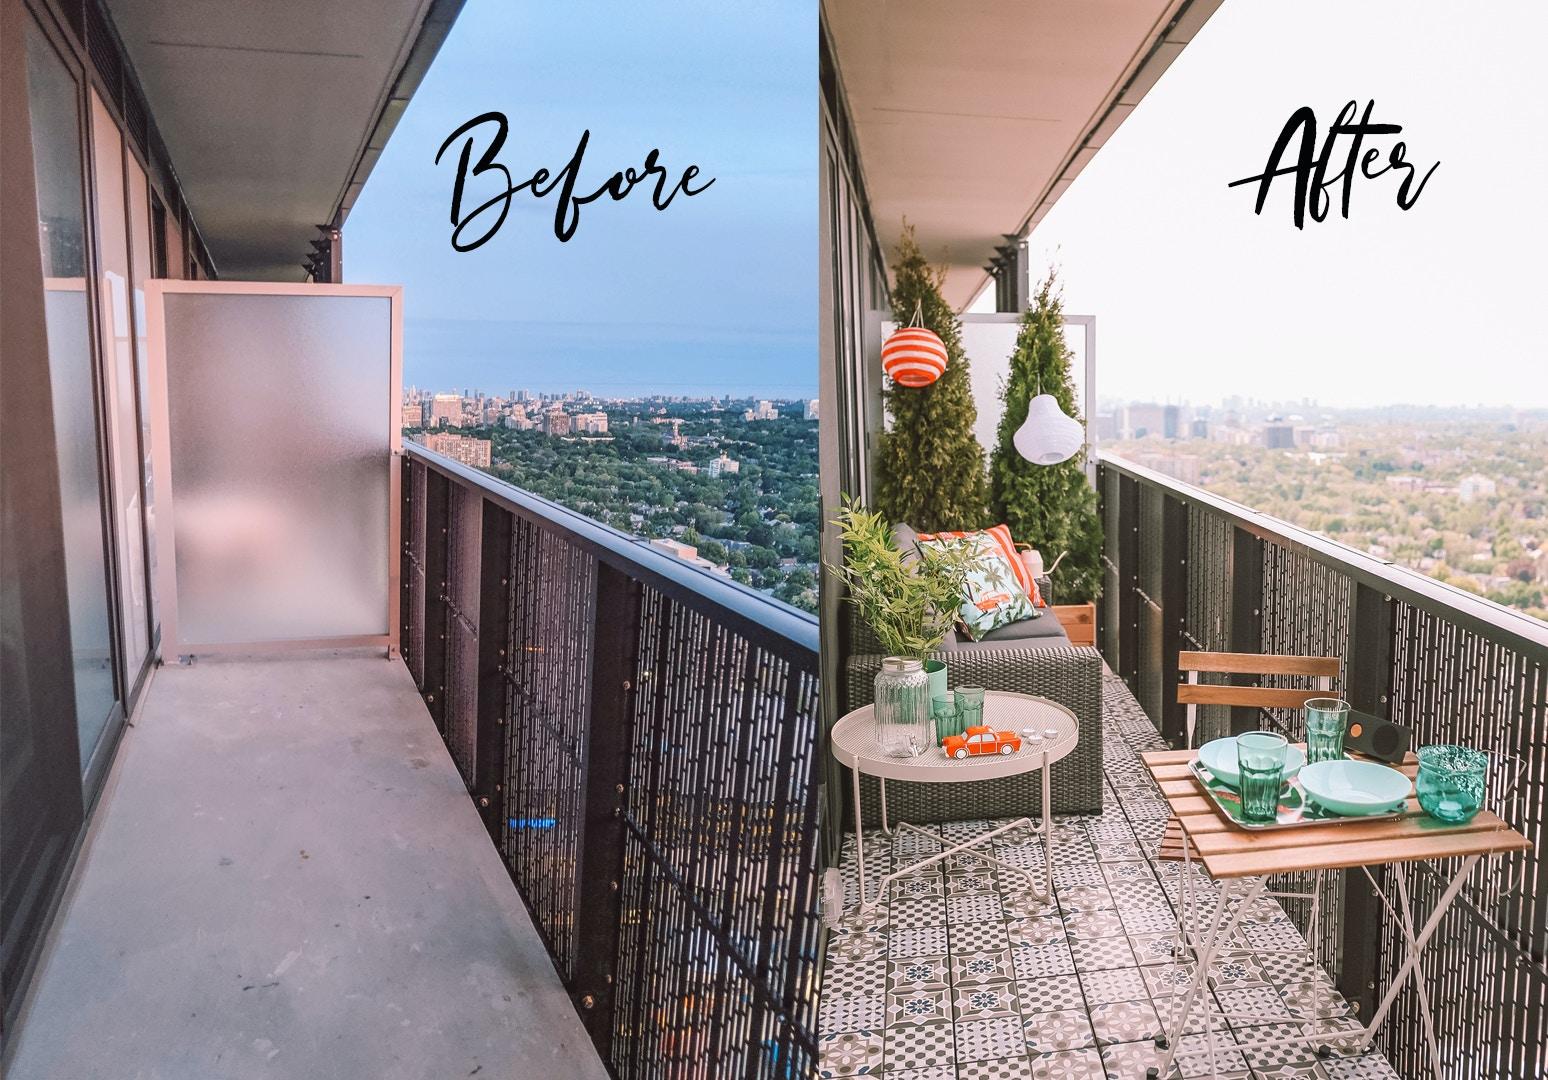 Before & After - Small Space Condo Balcony Makeover ft. IKEA Patio Furniture, including the Solleron series sofa, Mallsten decking, Krokholmen coffee table, Tarno bistro set and more!